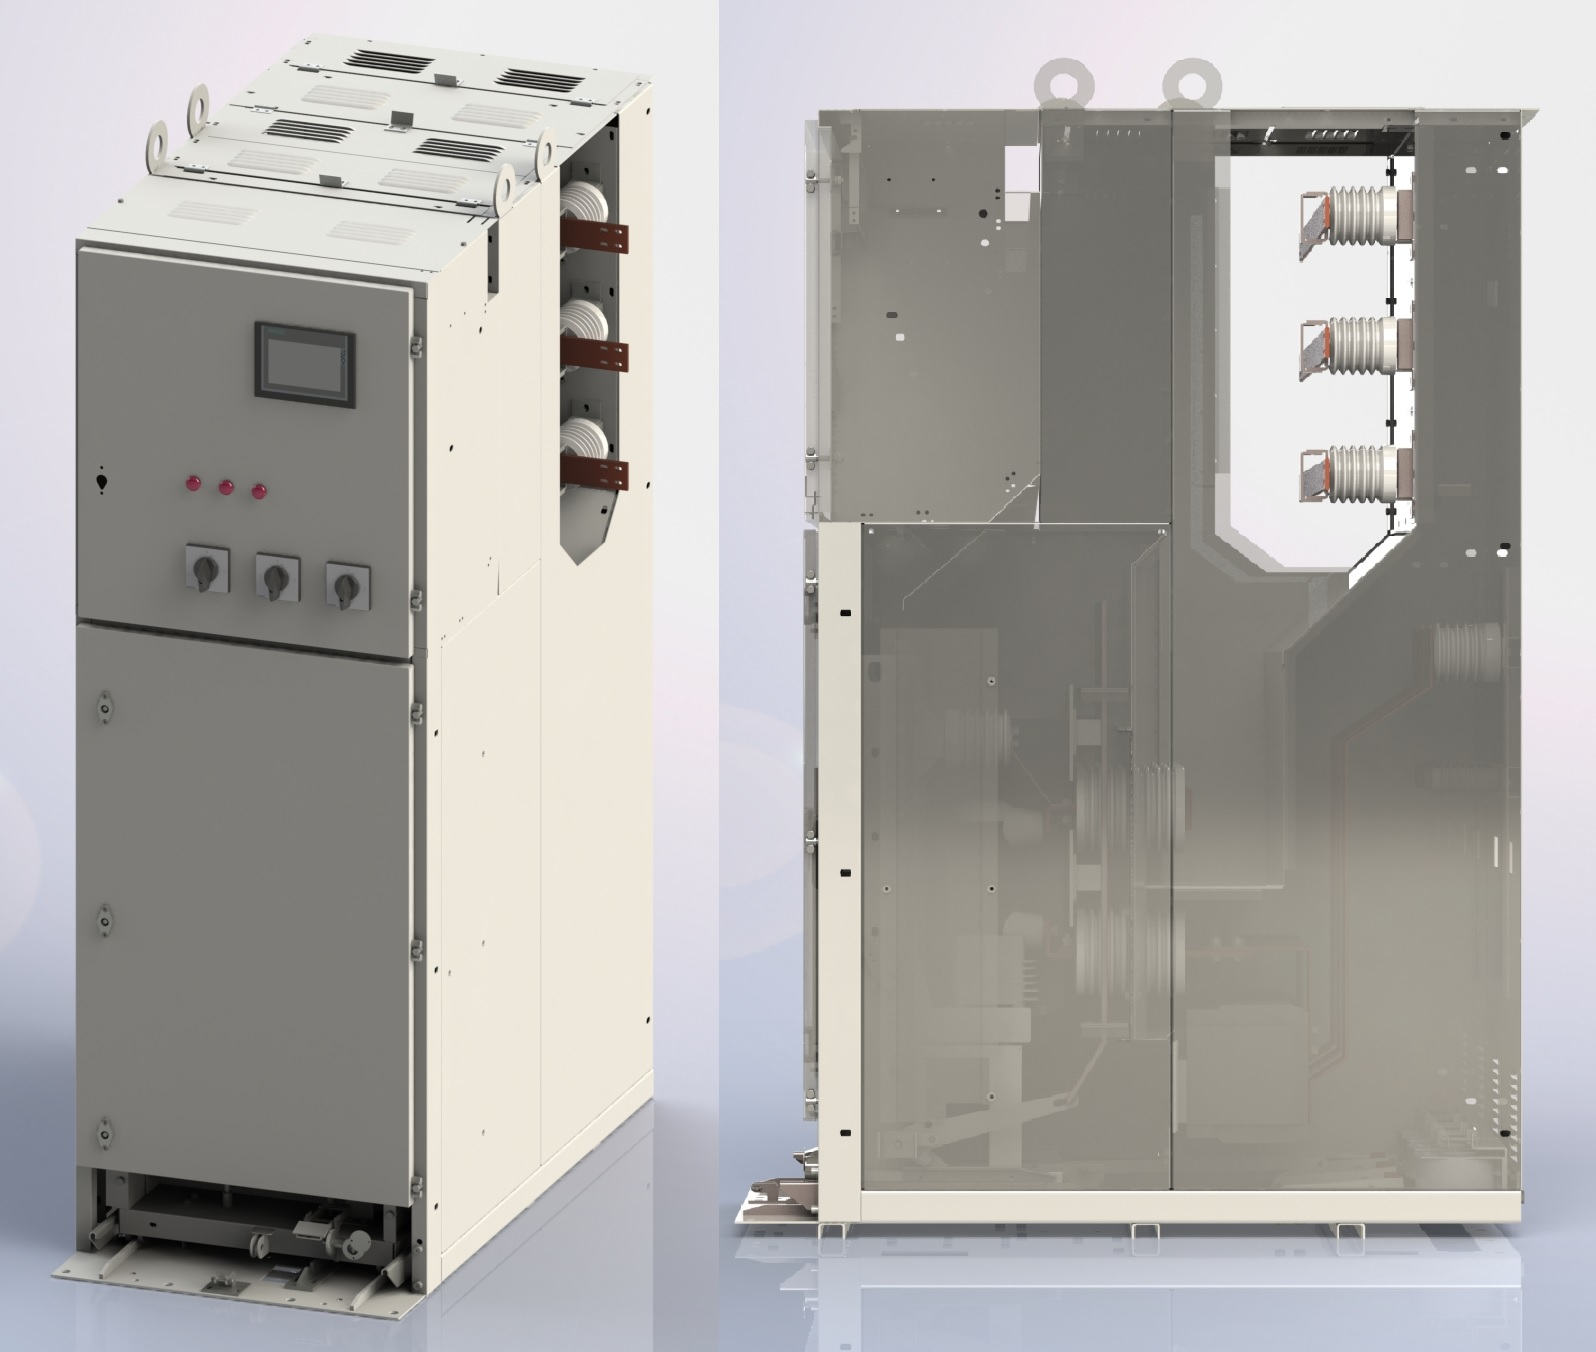 6-10 kV КРУ-10Э and КРУ-10ЭЦ - type high voltage cabinet